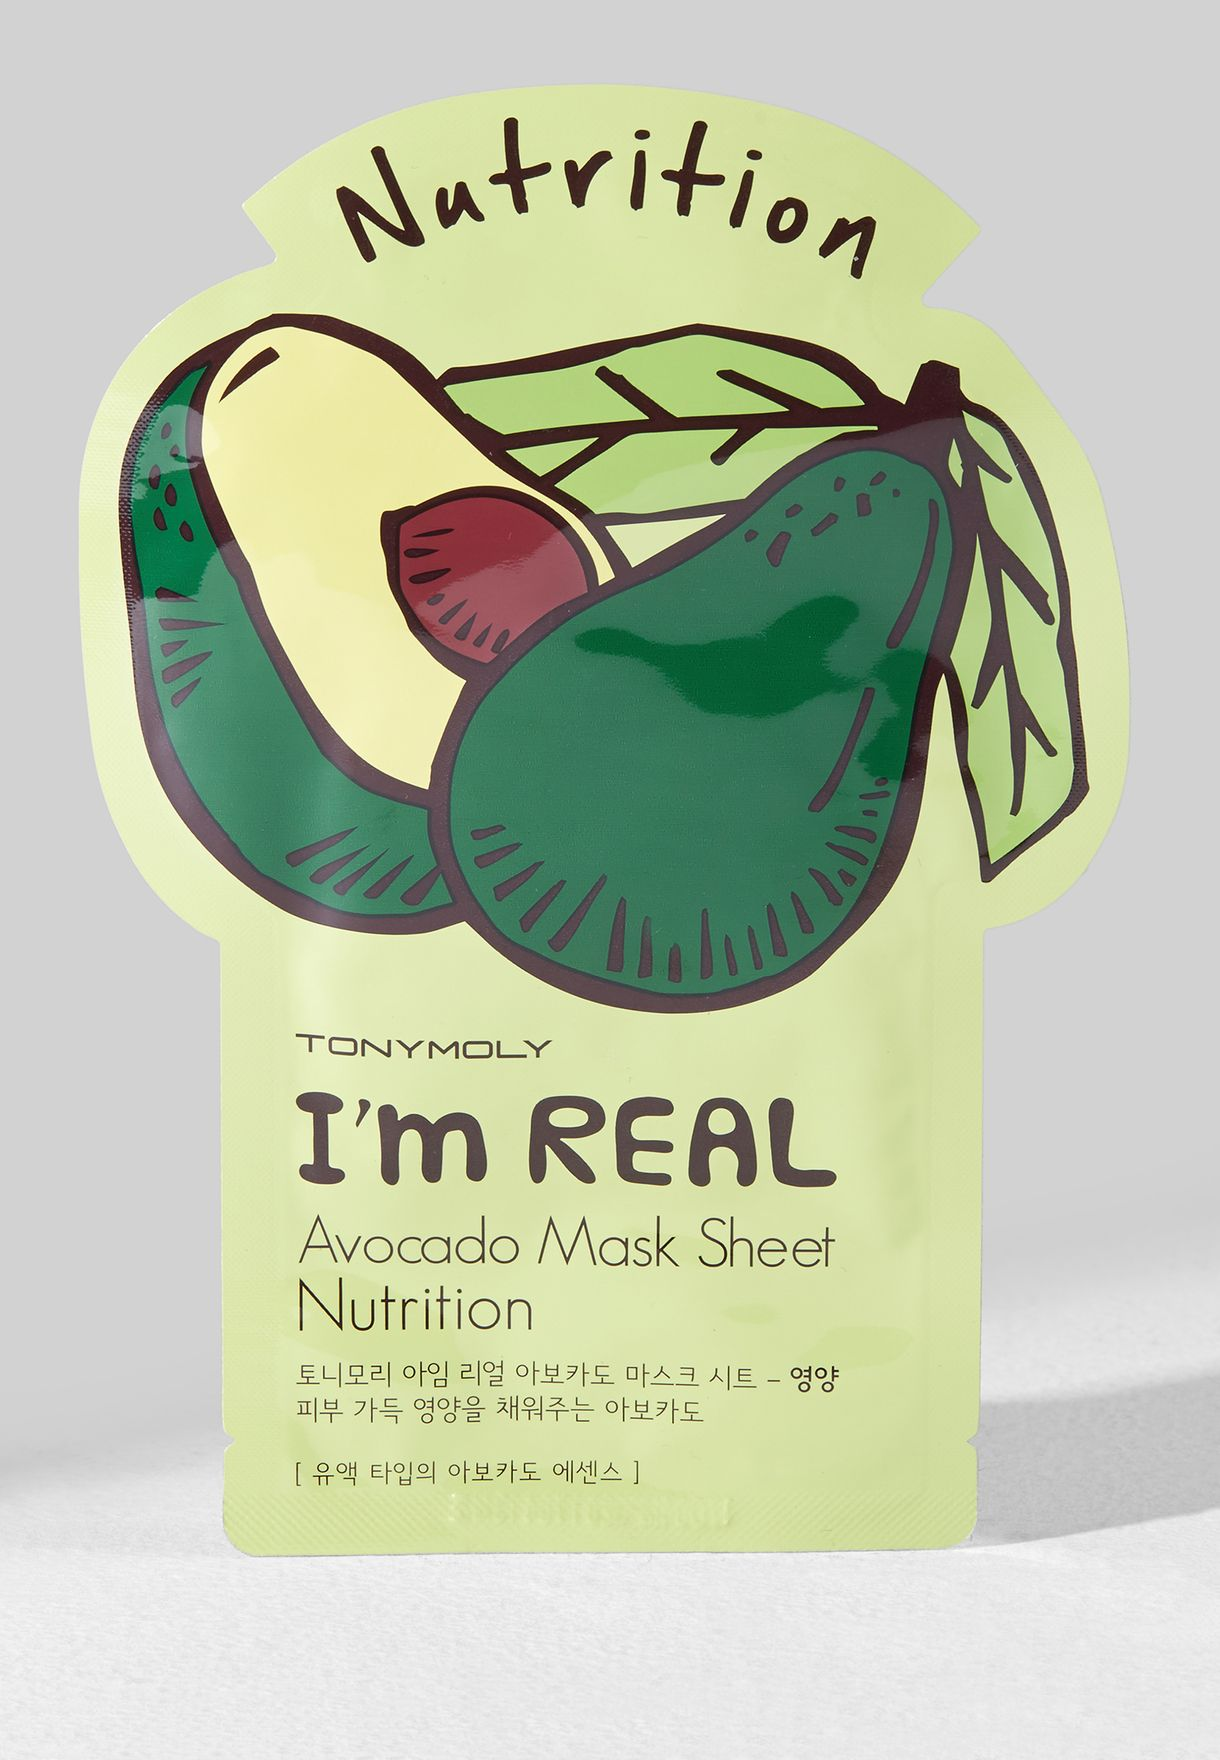 I Am Real Avocado Mask Sheet